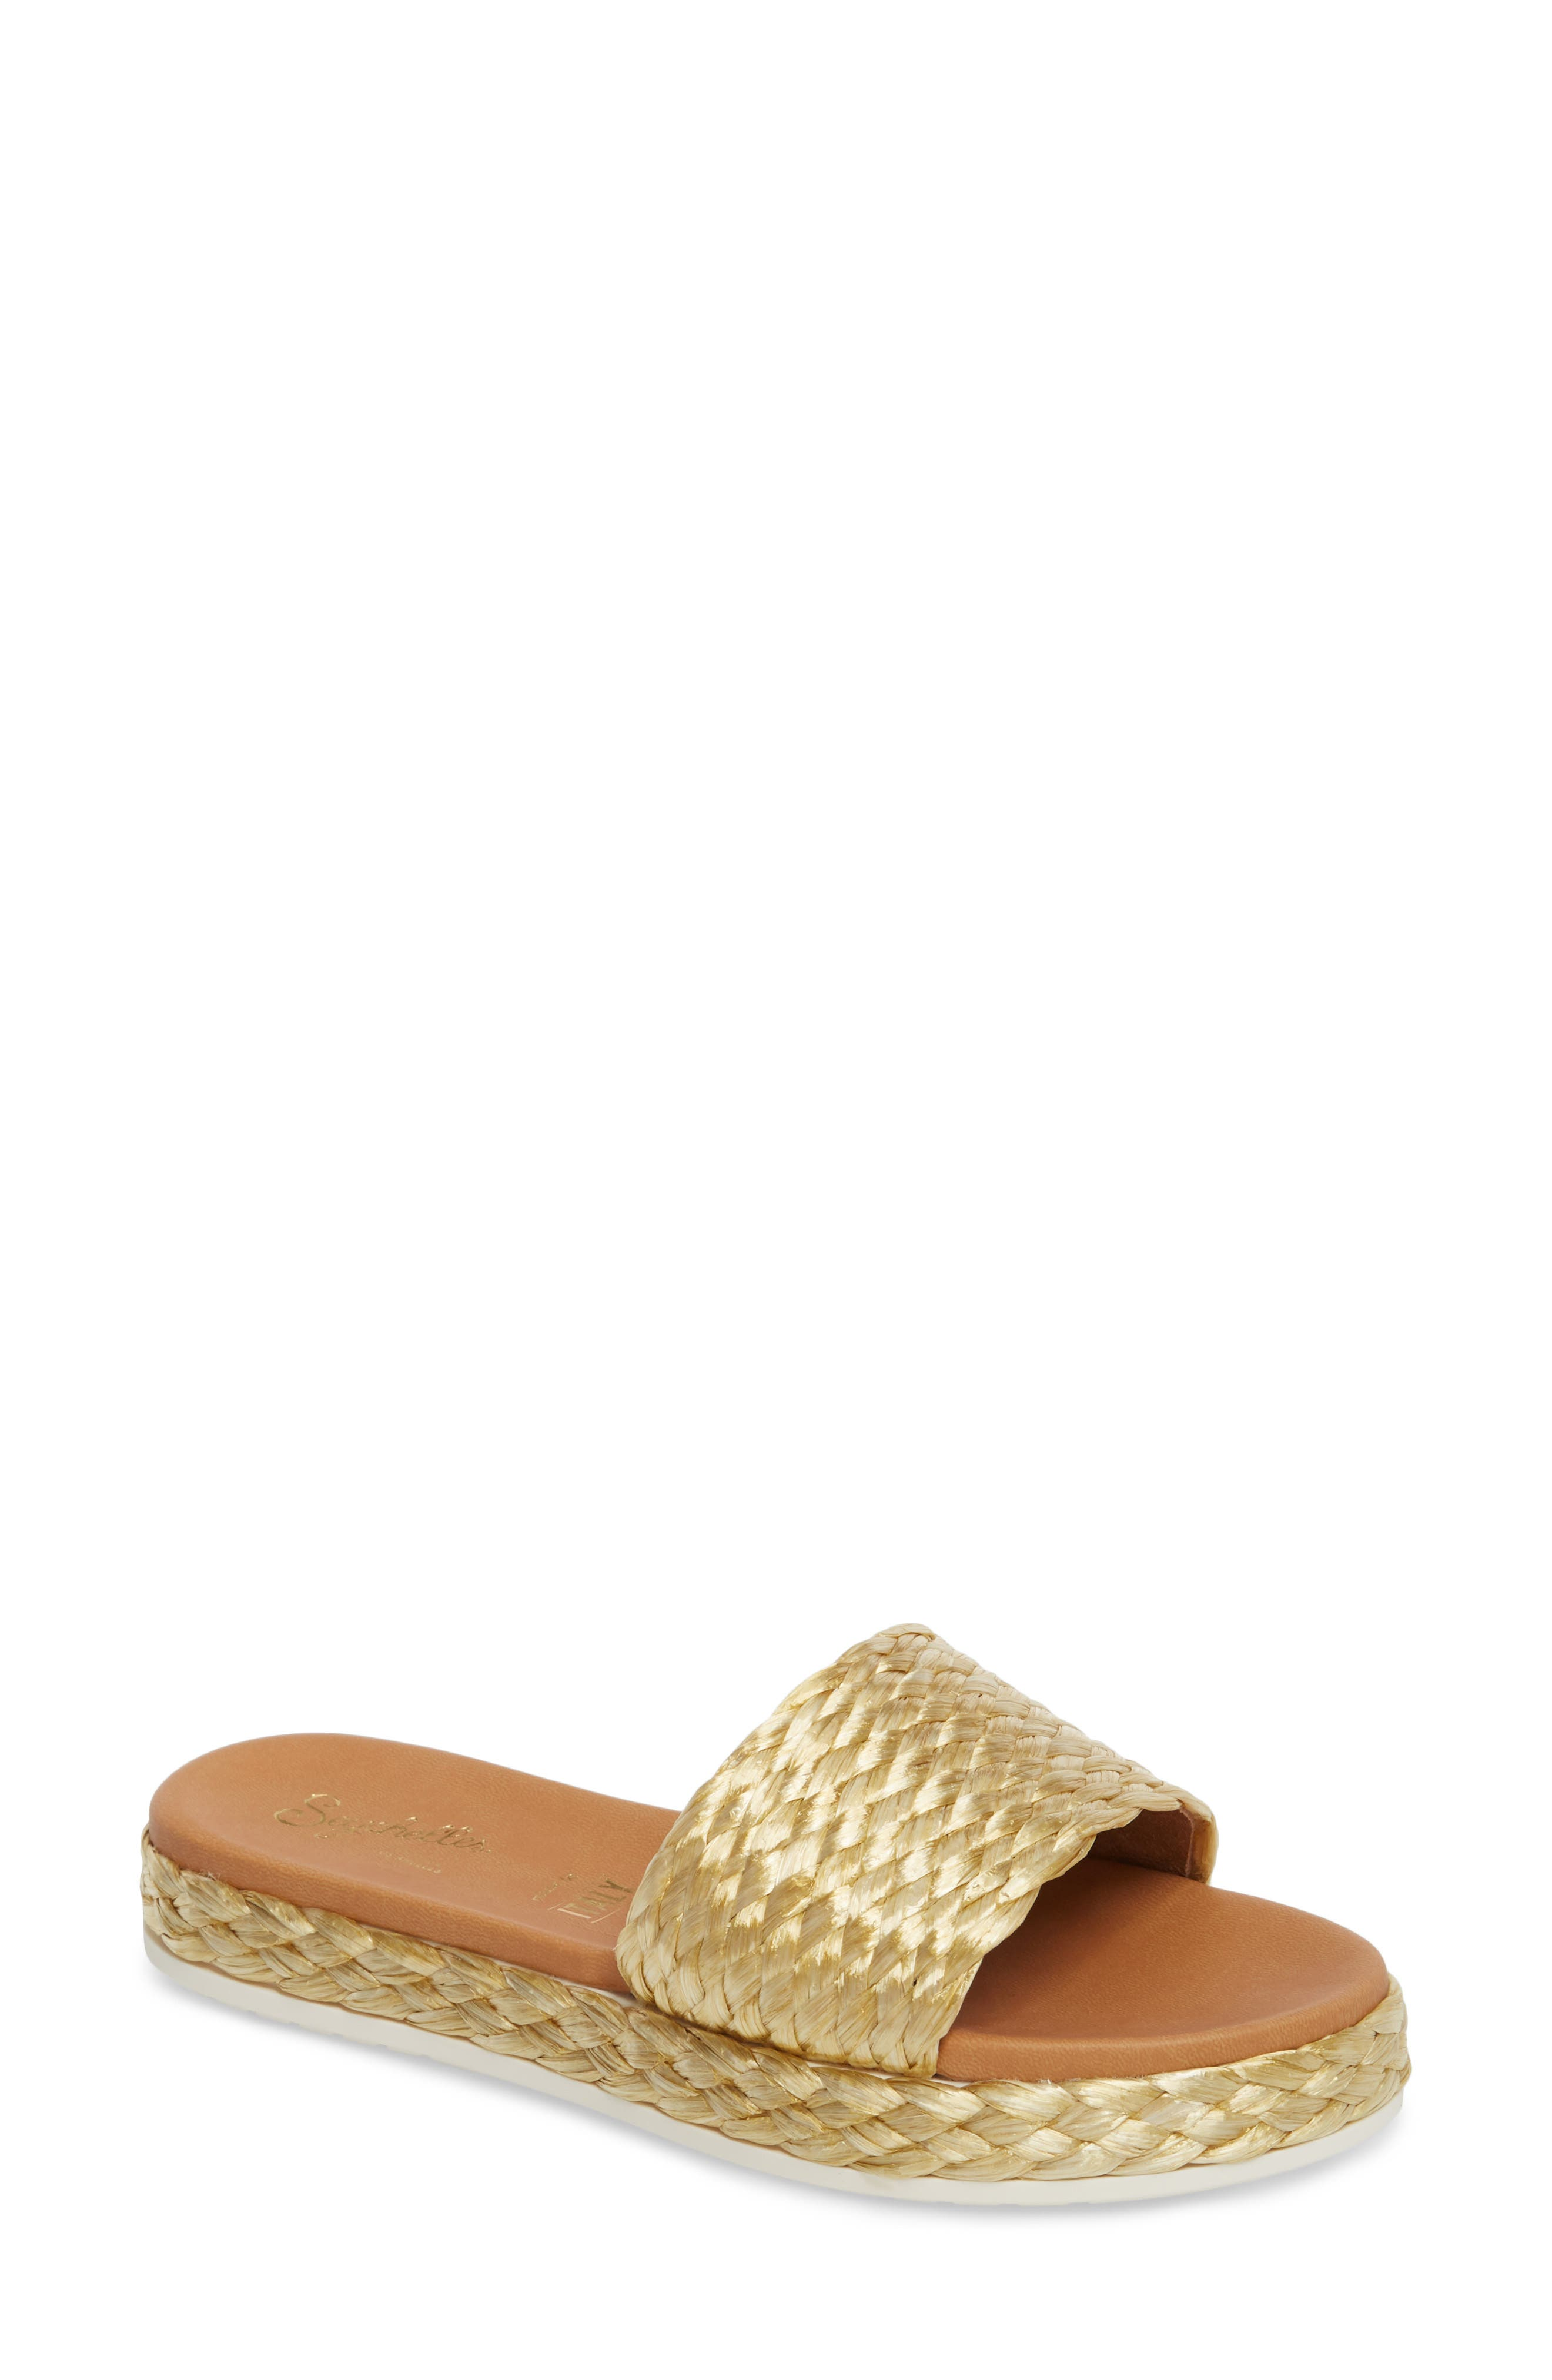 Quiet the Mind Slide Sandal,                         Main,                         color, Yellow Fabric